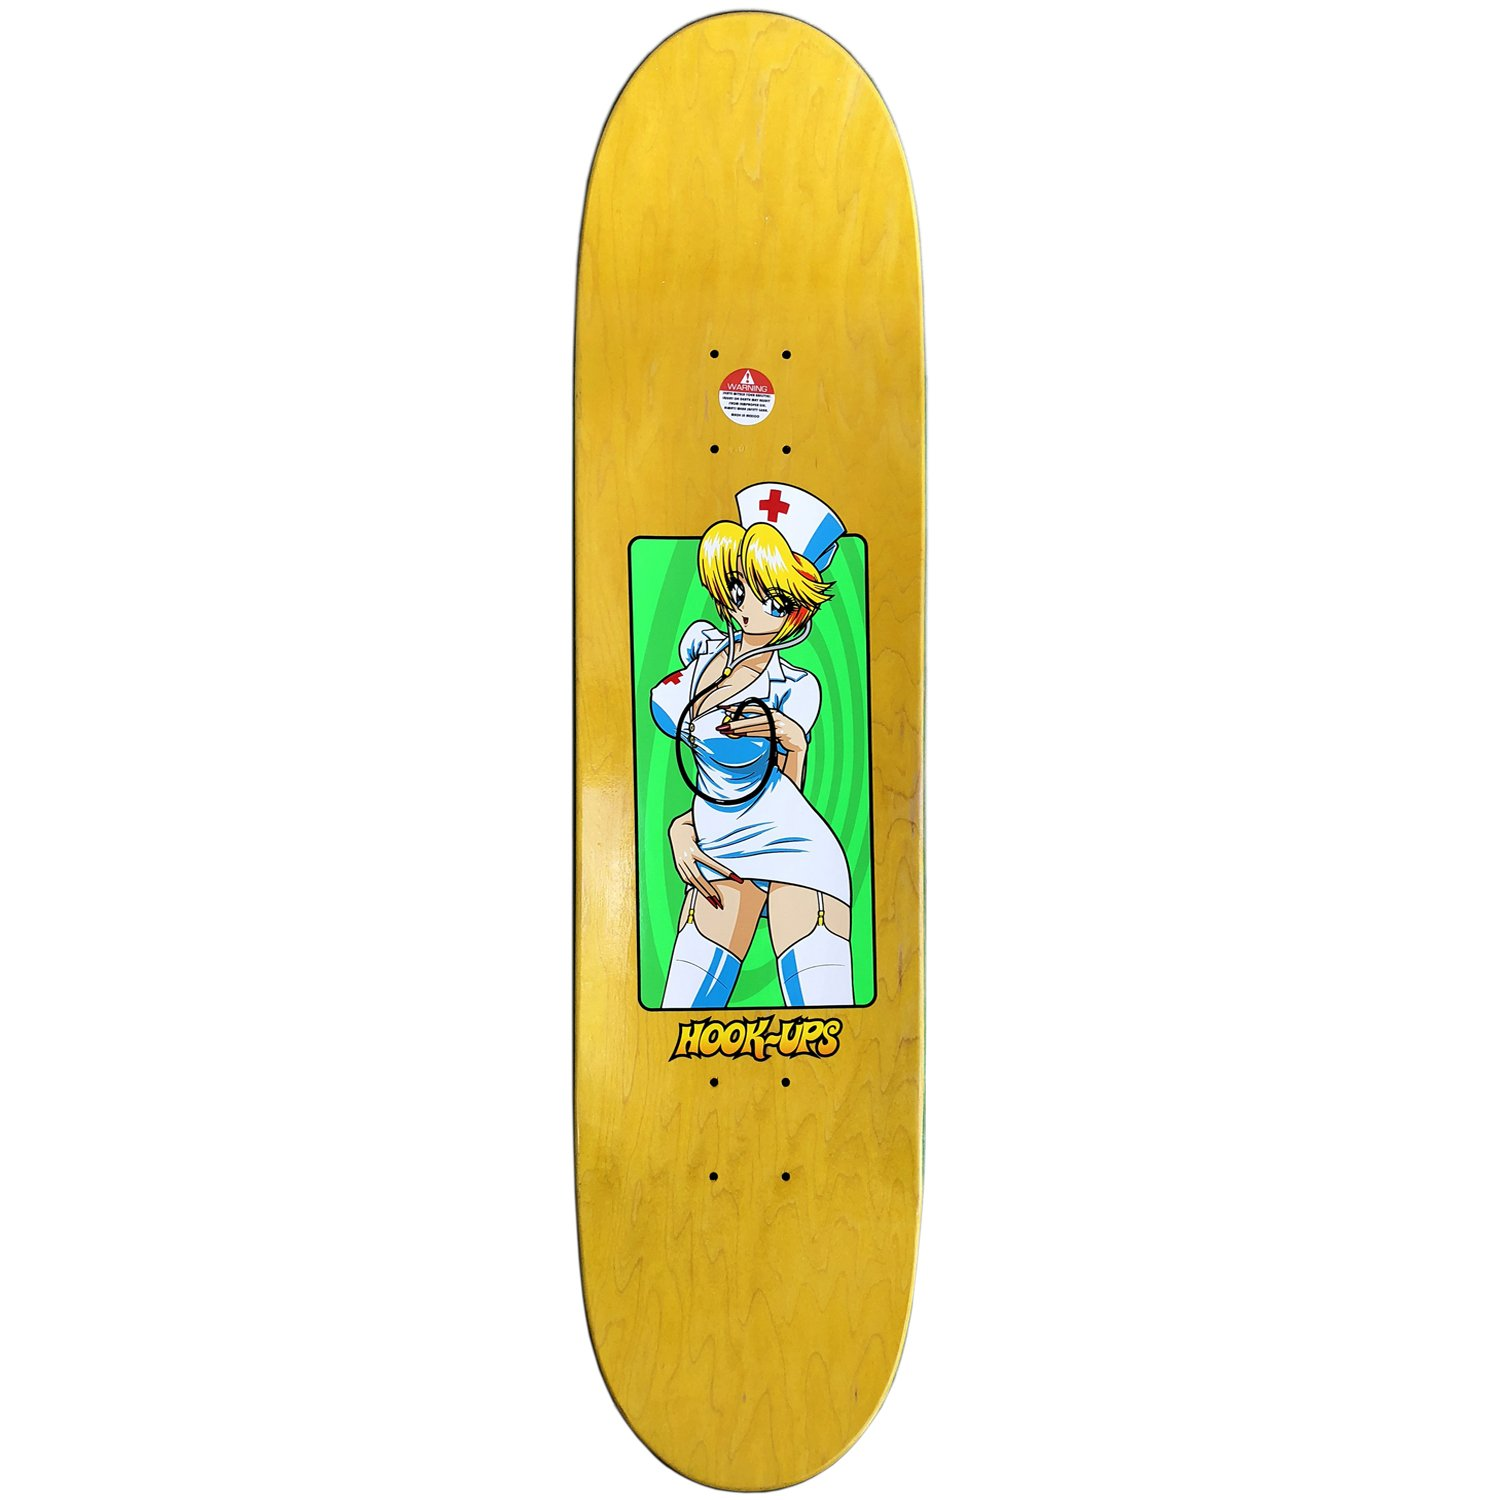 Hook Ups Skateboard Deck Nurse Girl Nikki 8.0'' by Hook Ups (Image #2)